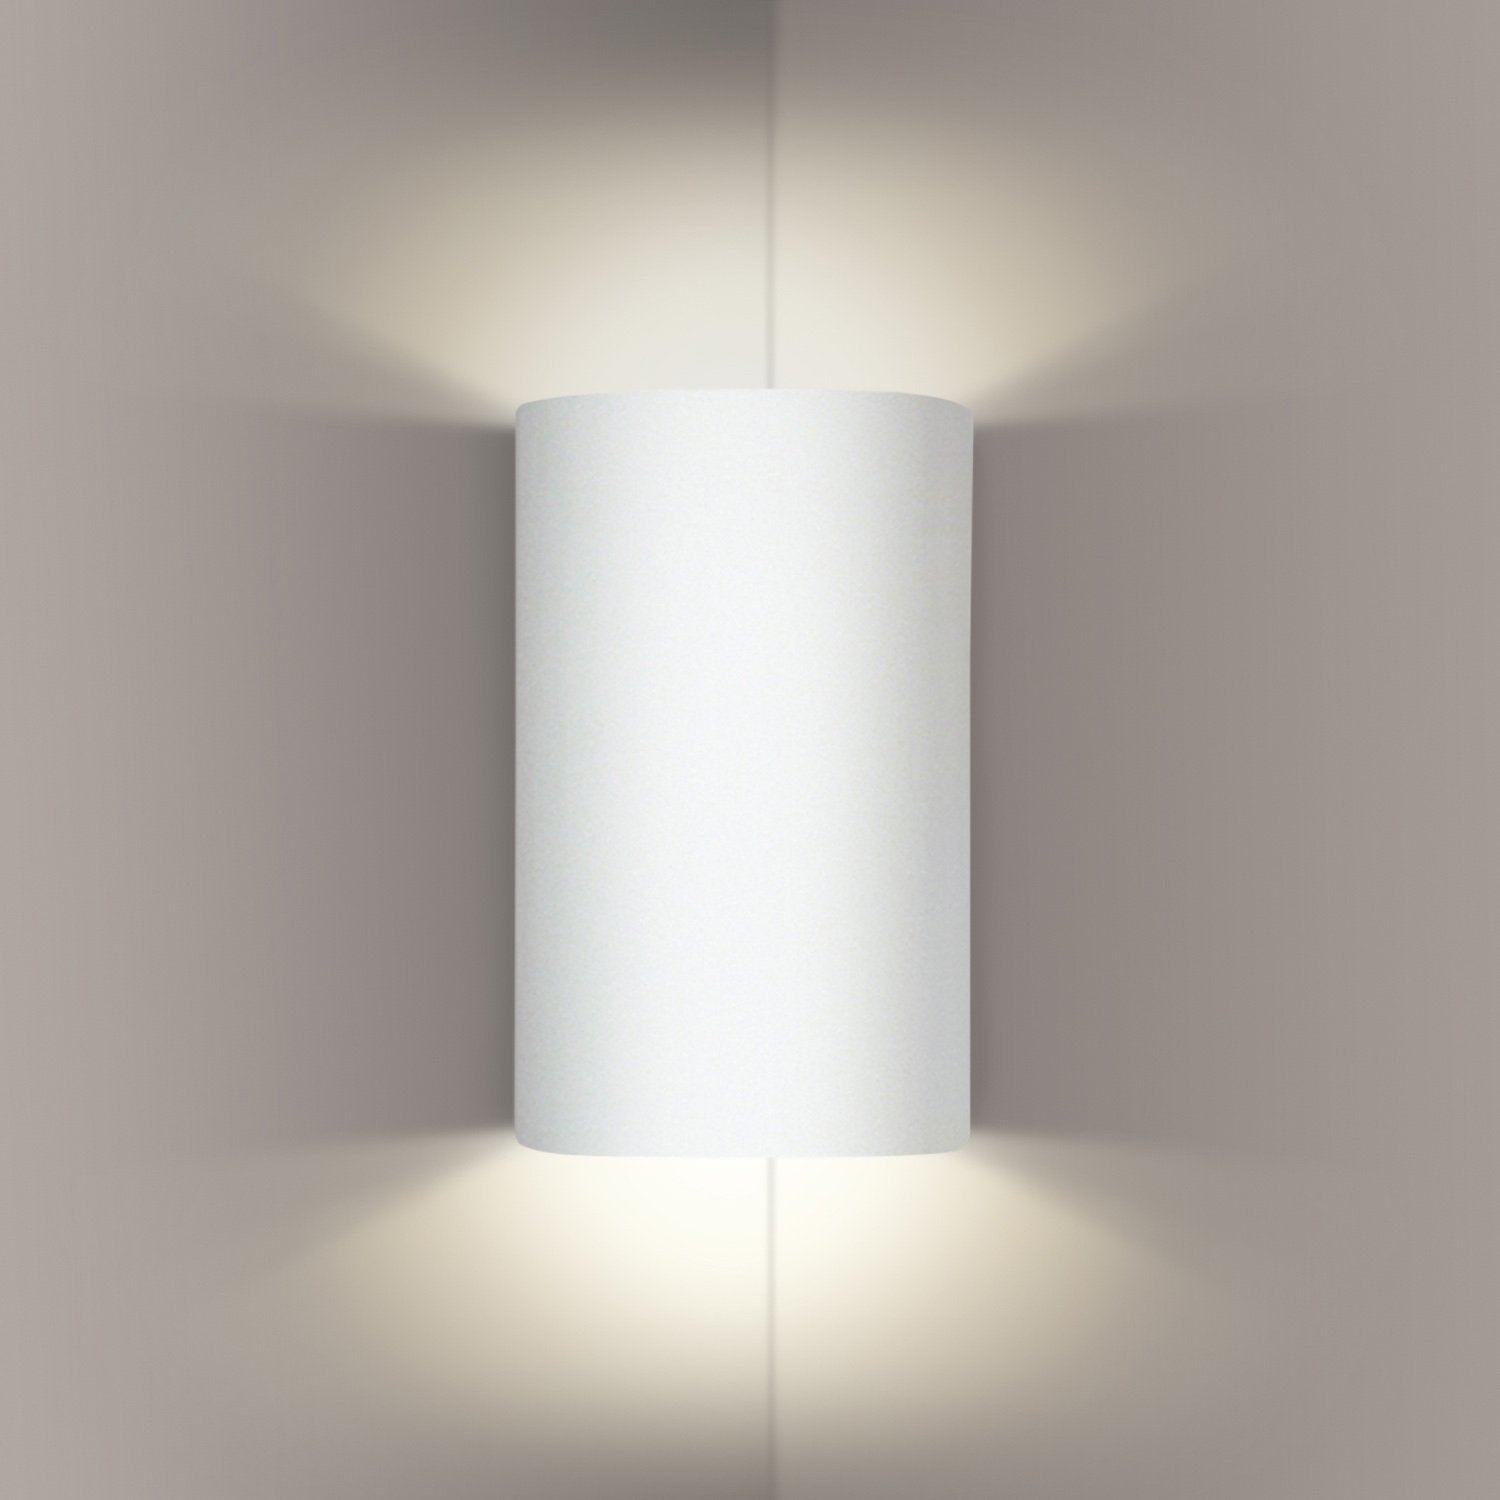 A19 203CNR-LEDGU24-MW Islands of Light Collection Tenos Matte White Finish Corner Wall Sconce